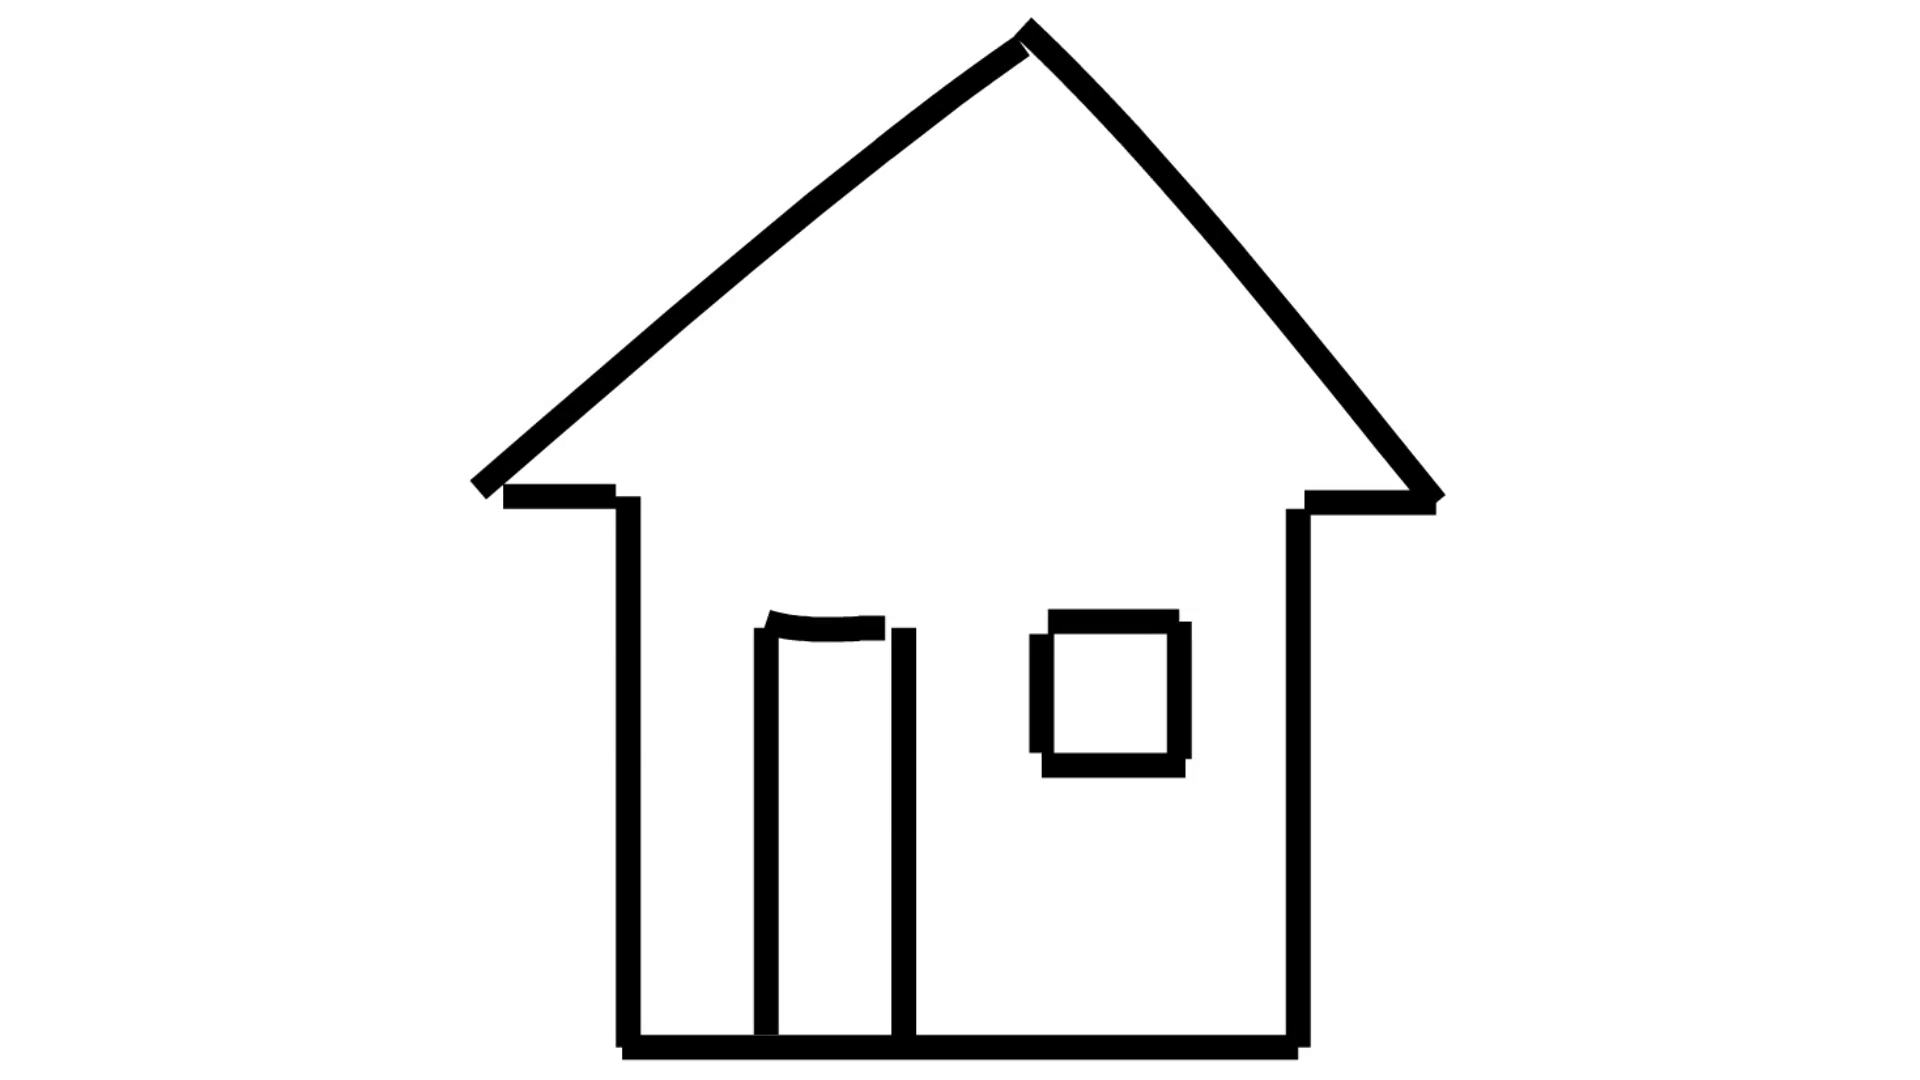 House line drawing illustration animation with transparent background.